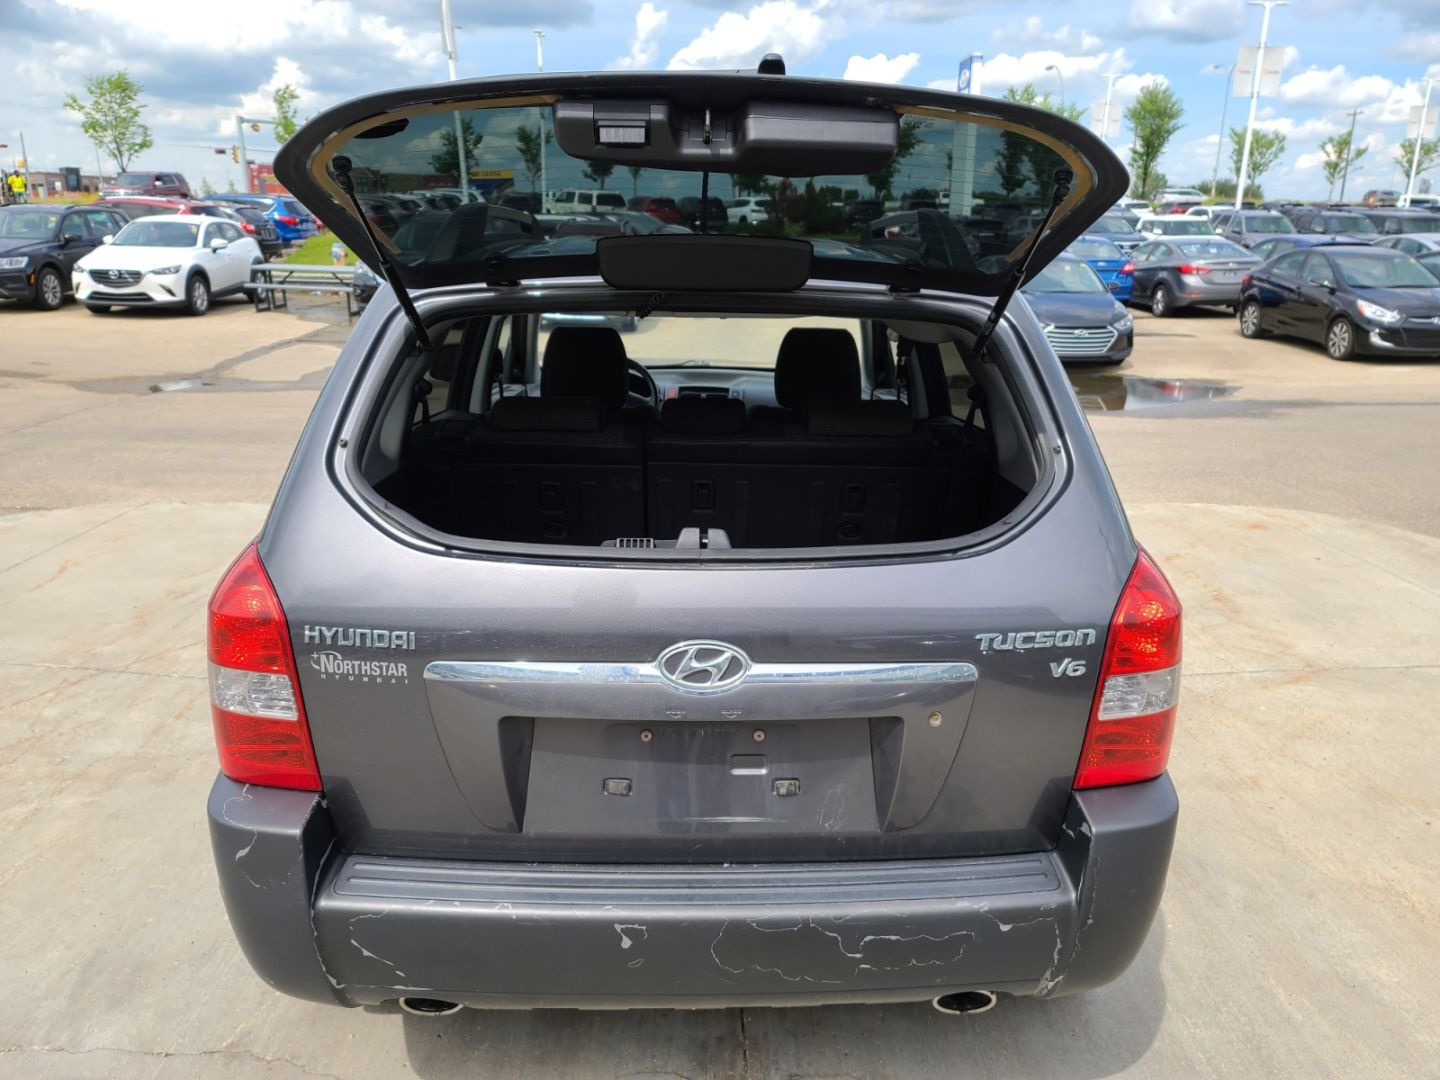 2008 Hyundai Tucson GL for sale in Edmonton, Alberta